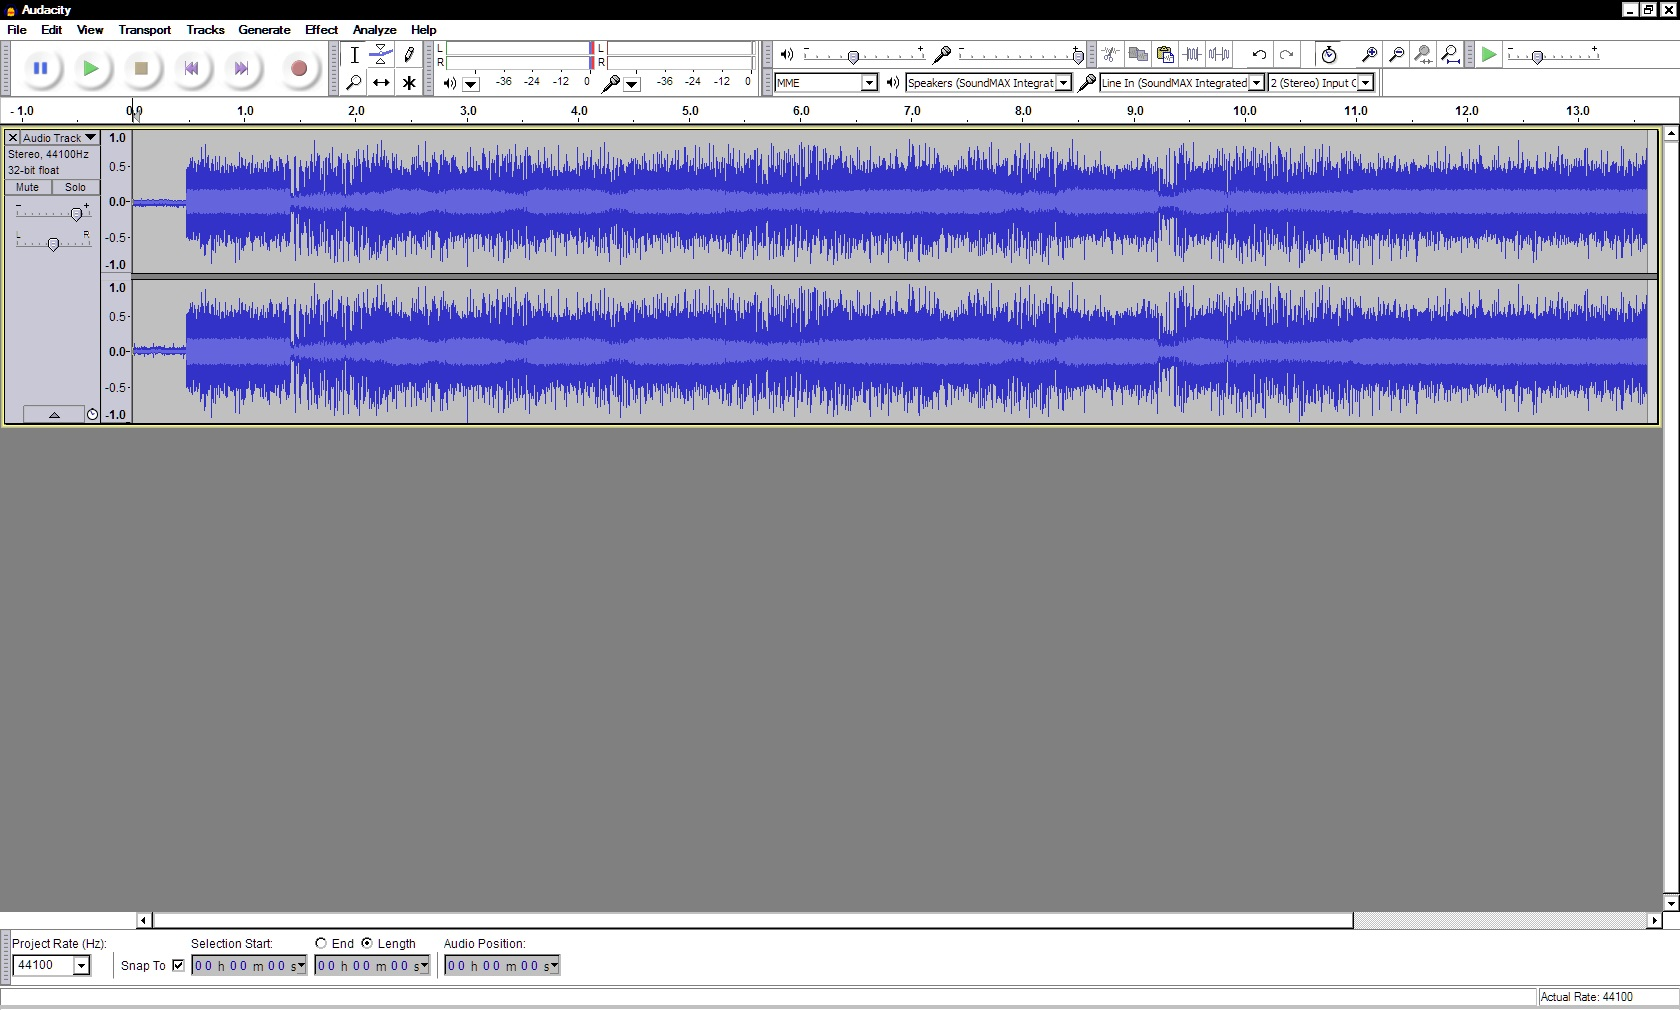 recording SDR audacity with pmr transmit 3 april 2016